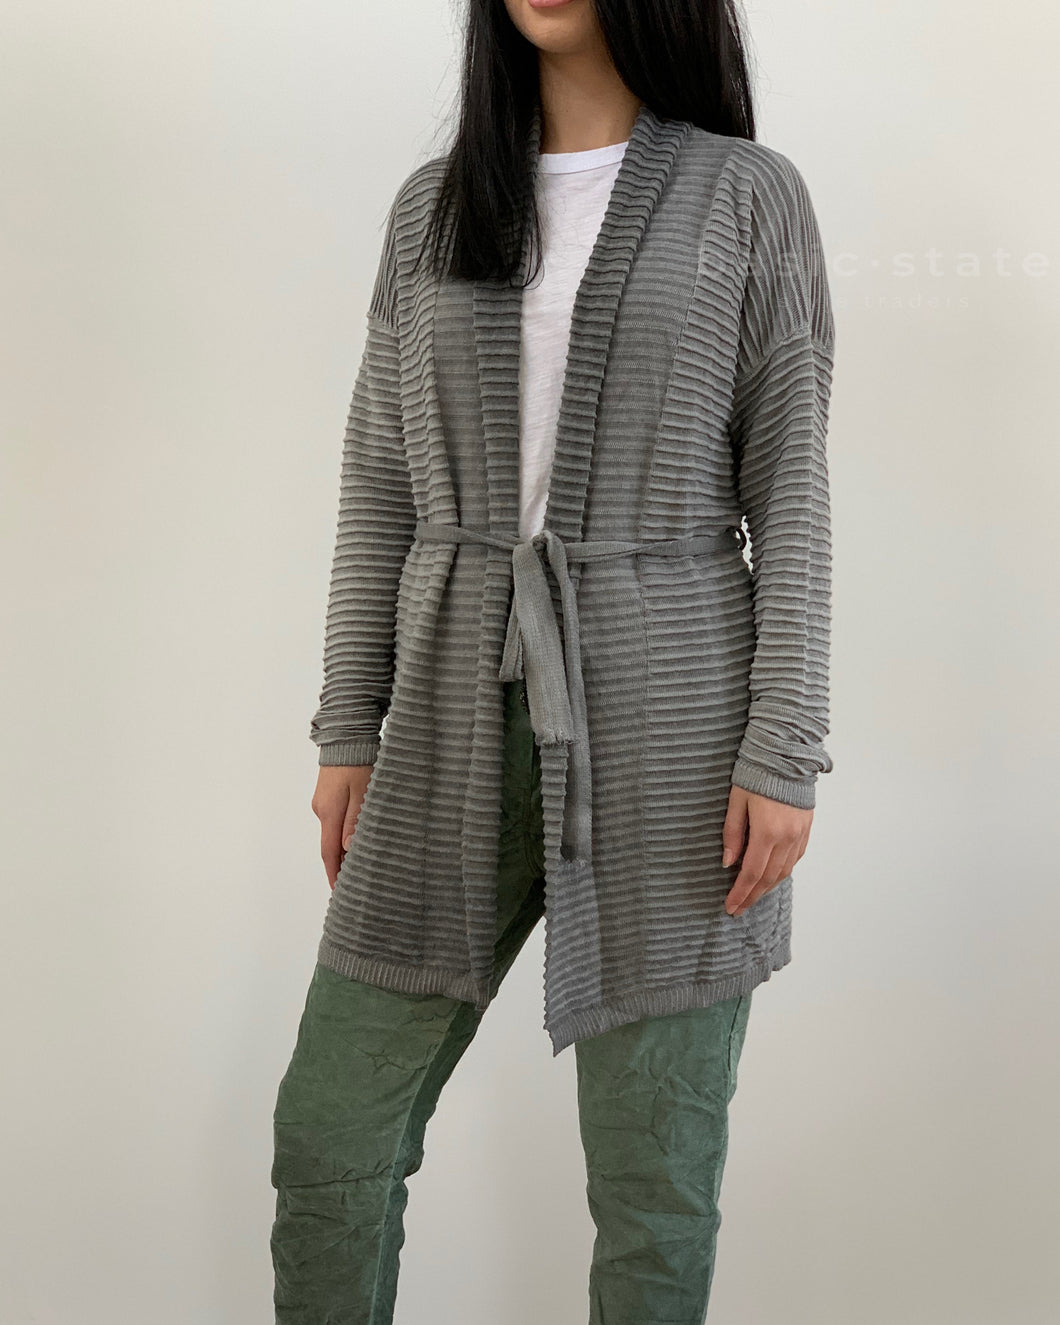 Amici made in Italy || Open Washed Cardigan - Smoke